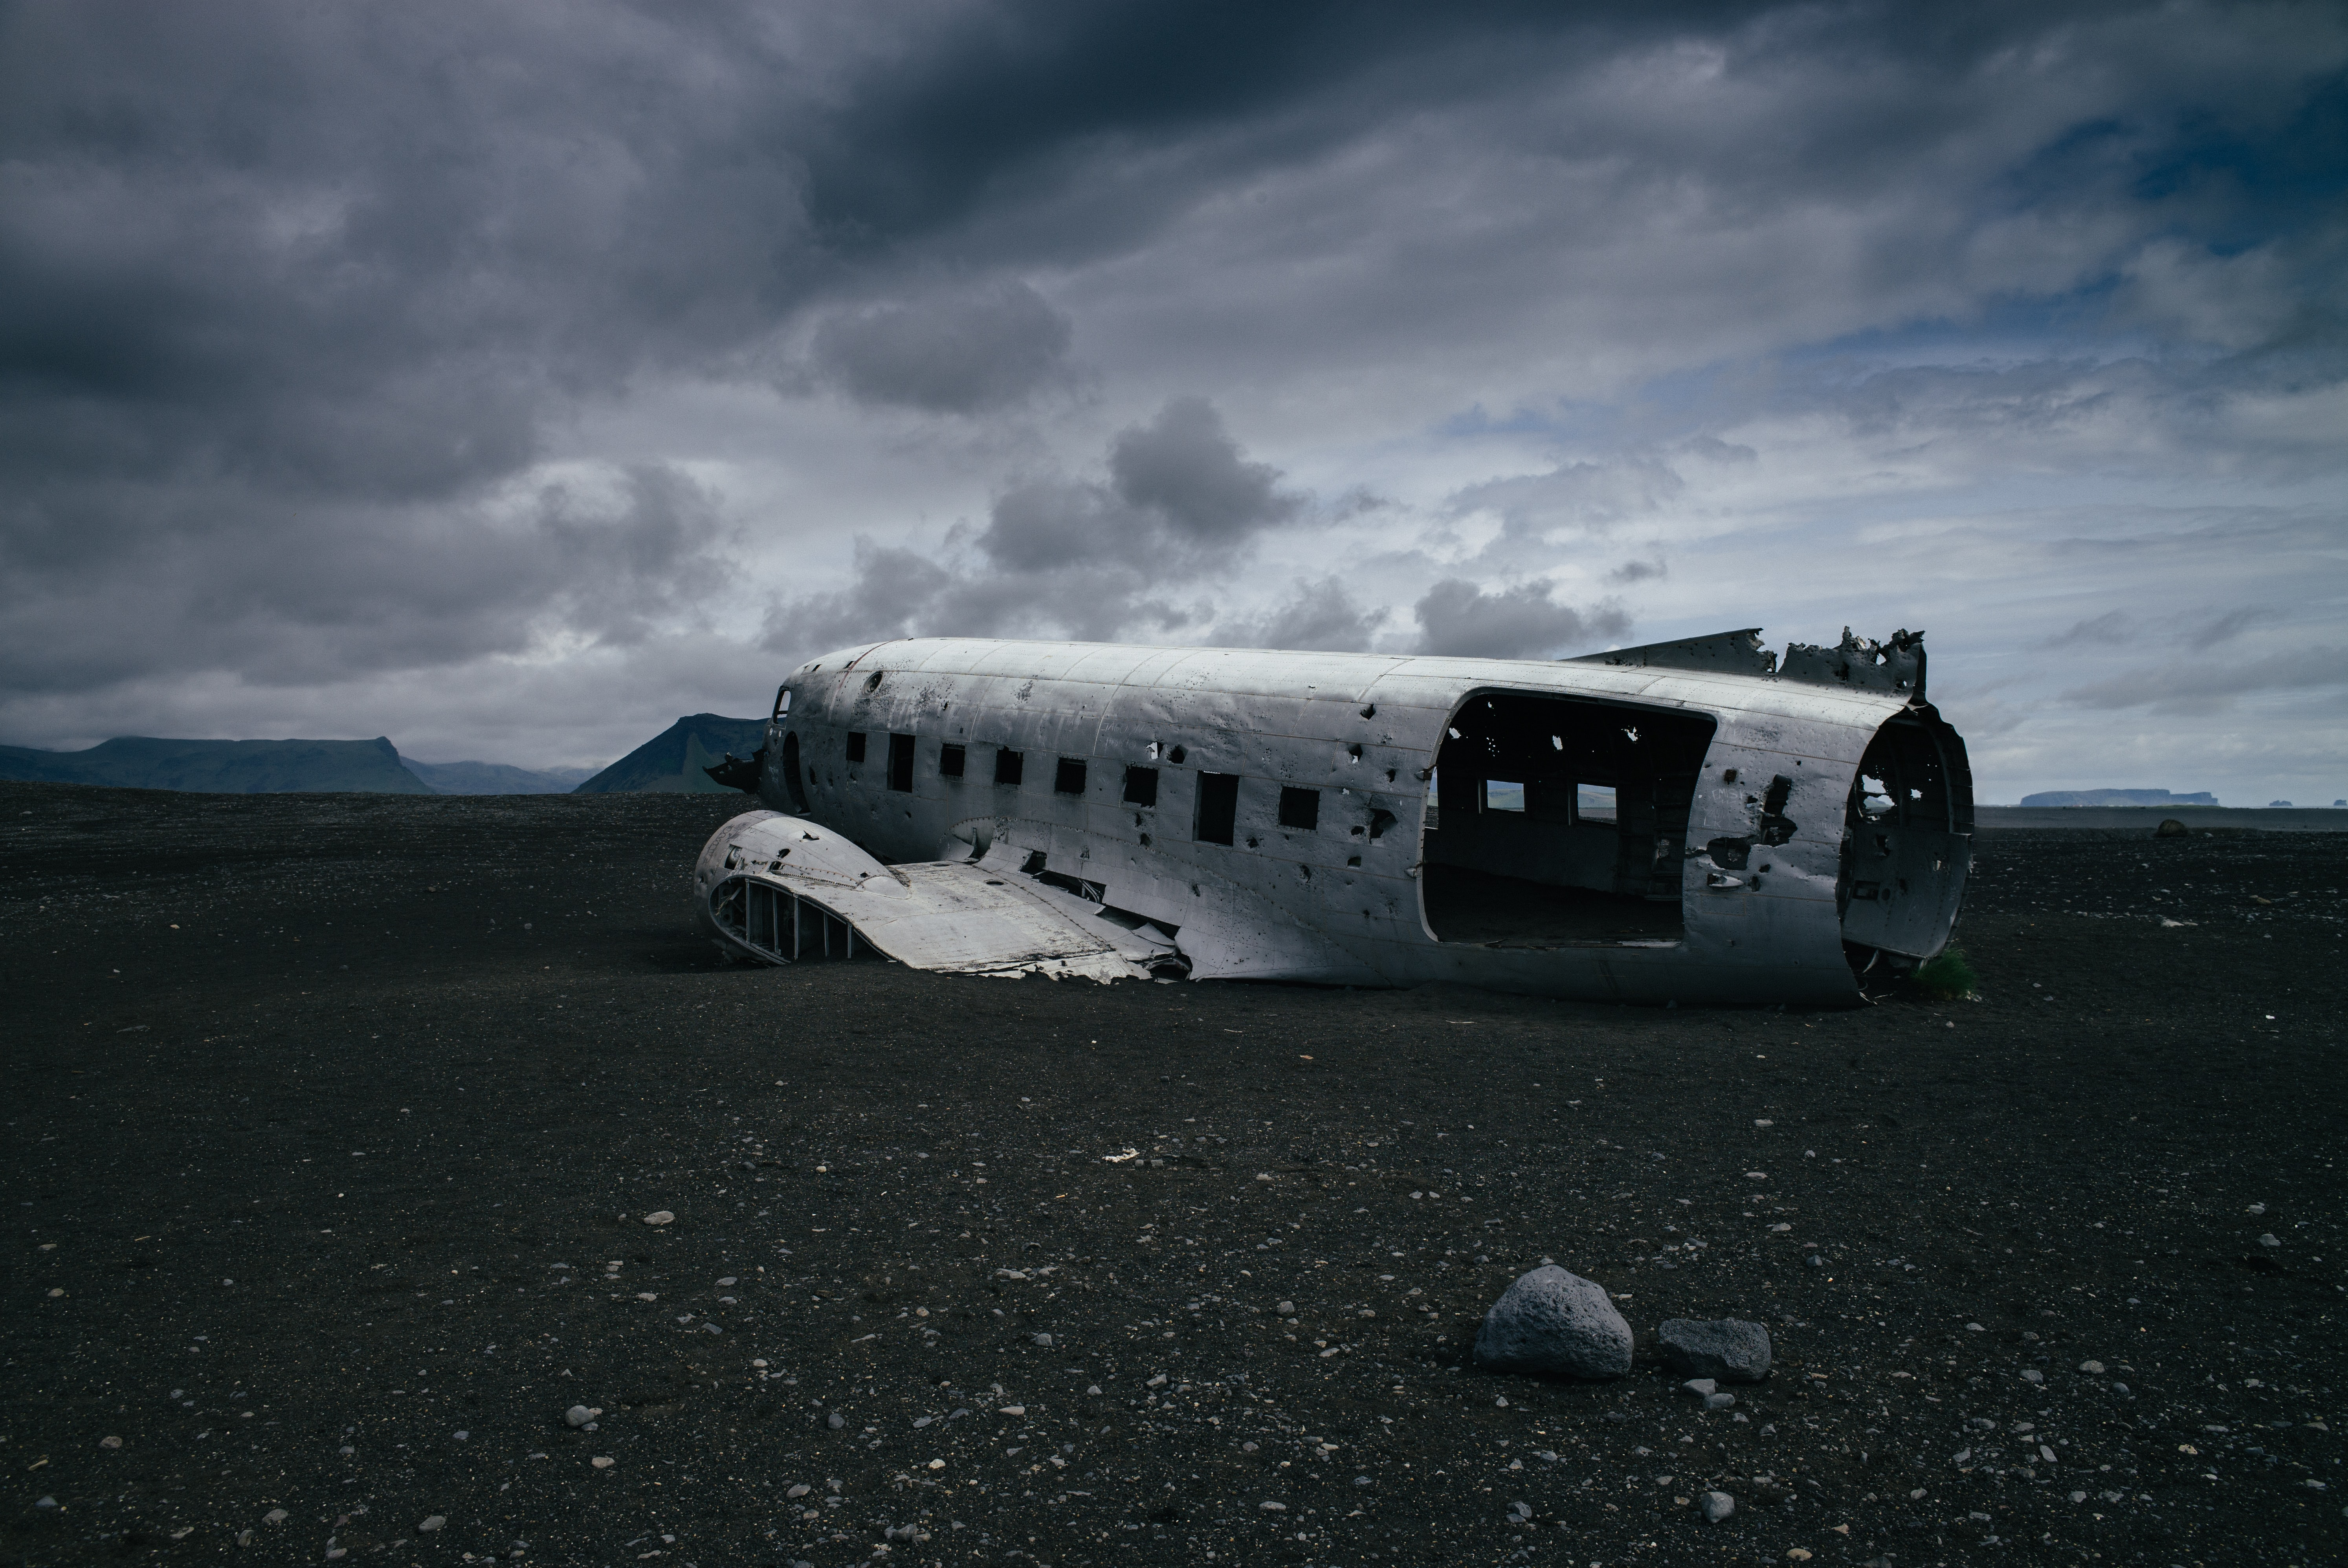 crashed white airliner